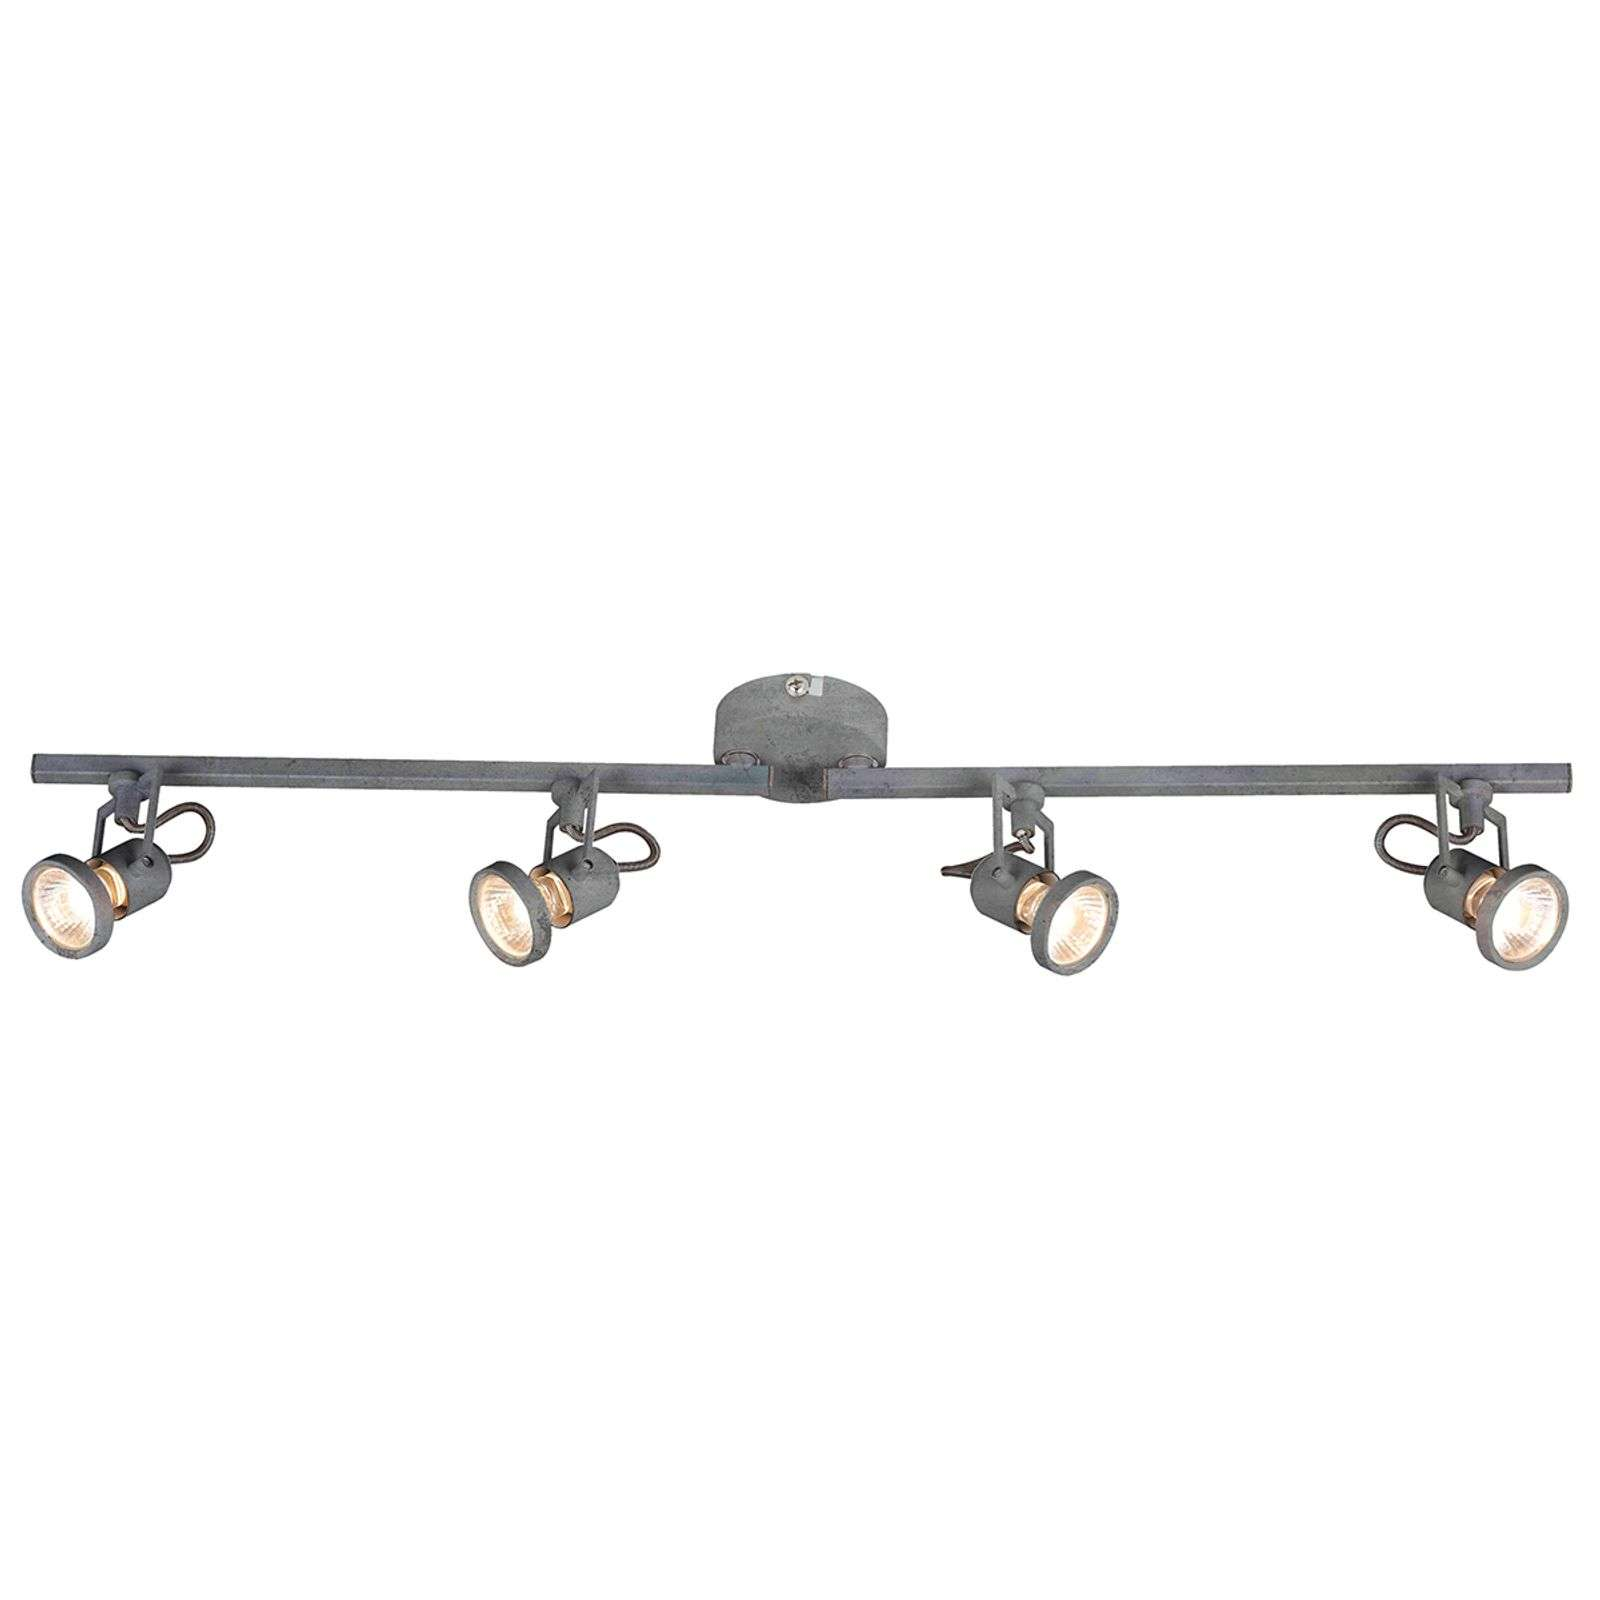 Plafonnier LED Concreto ajustable, 4 lampes